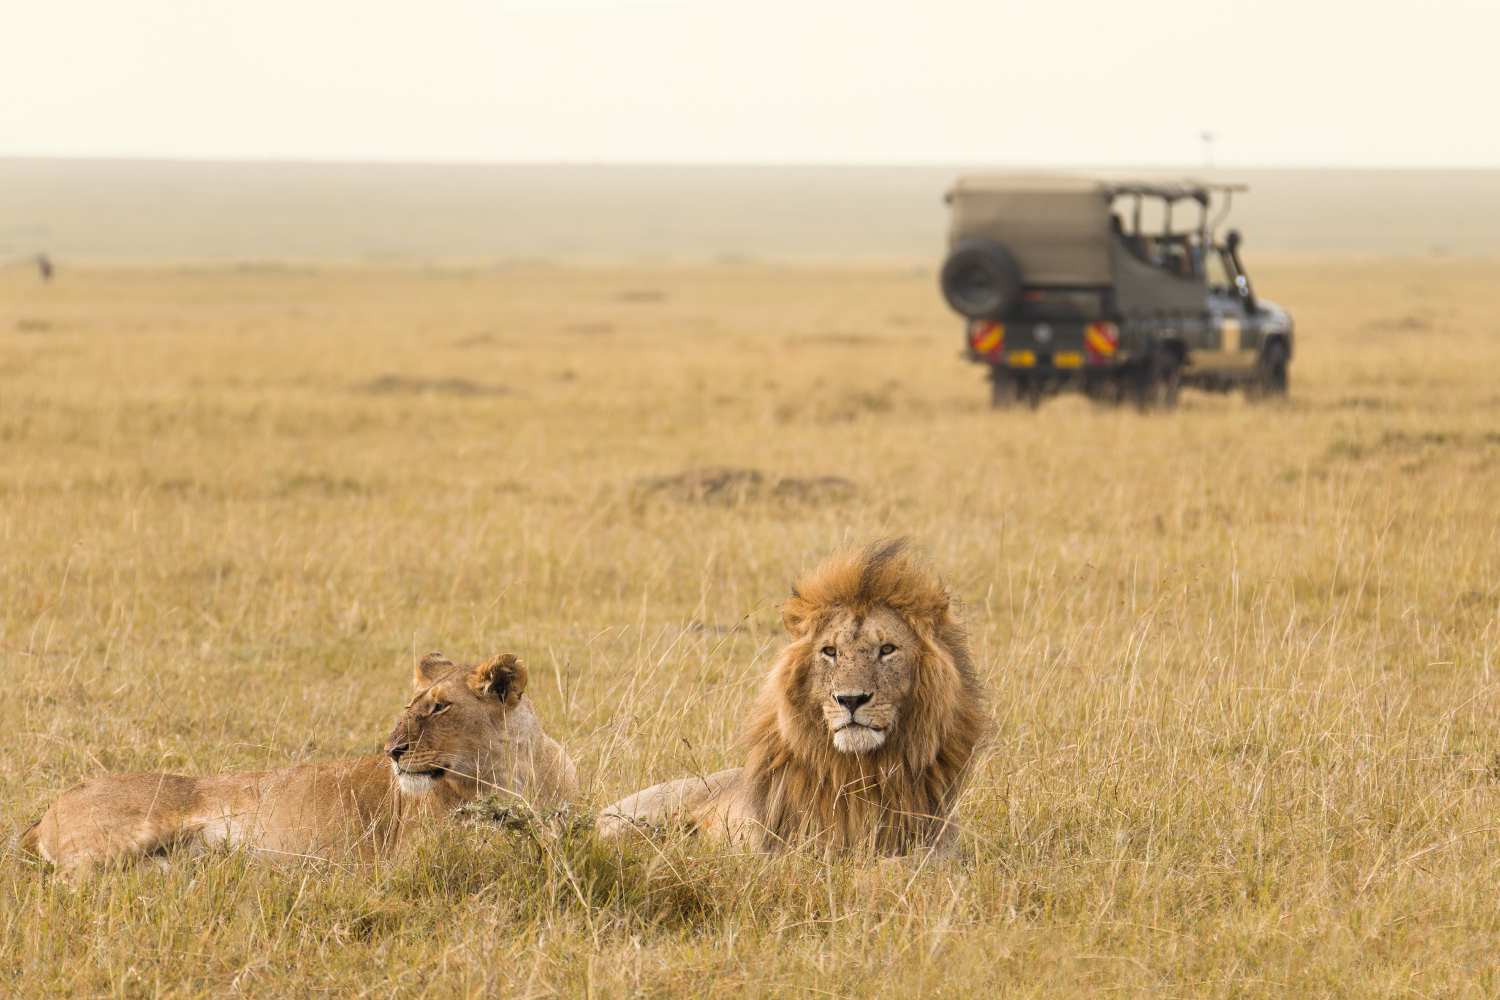 Kenya - African lion couple - safari